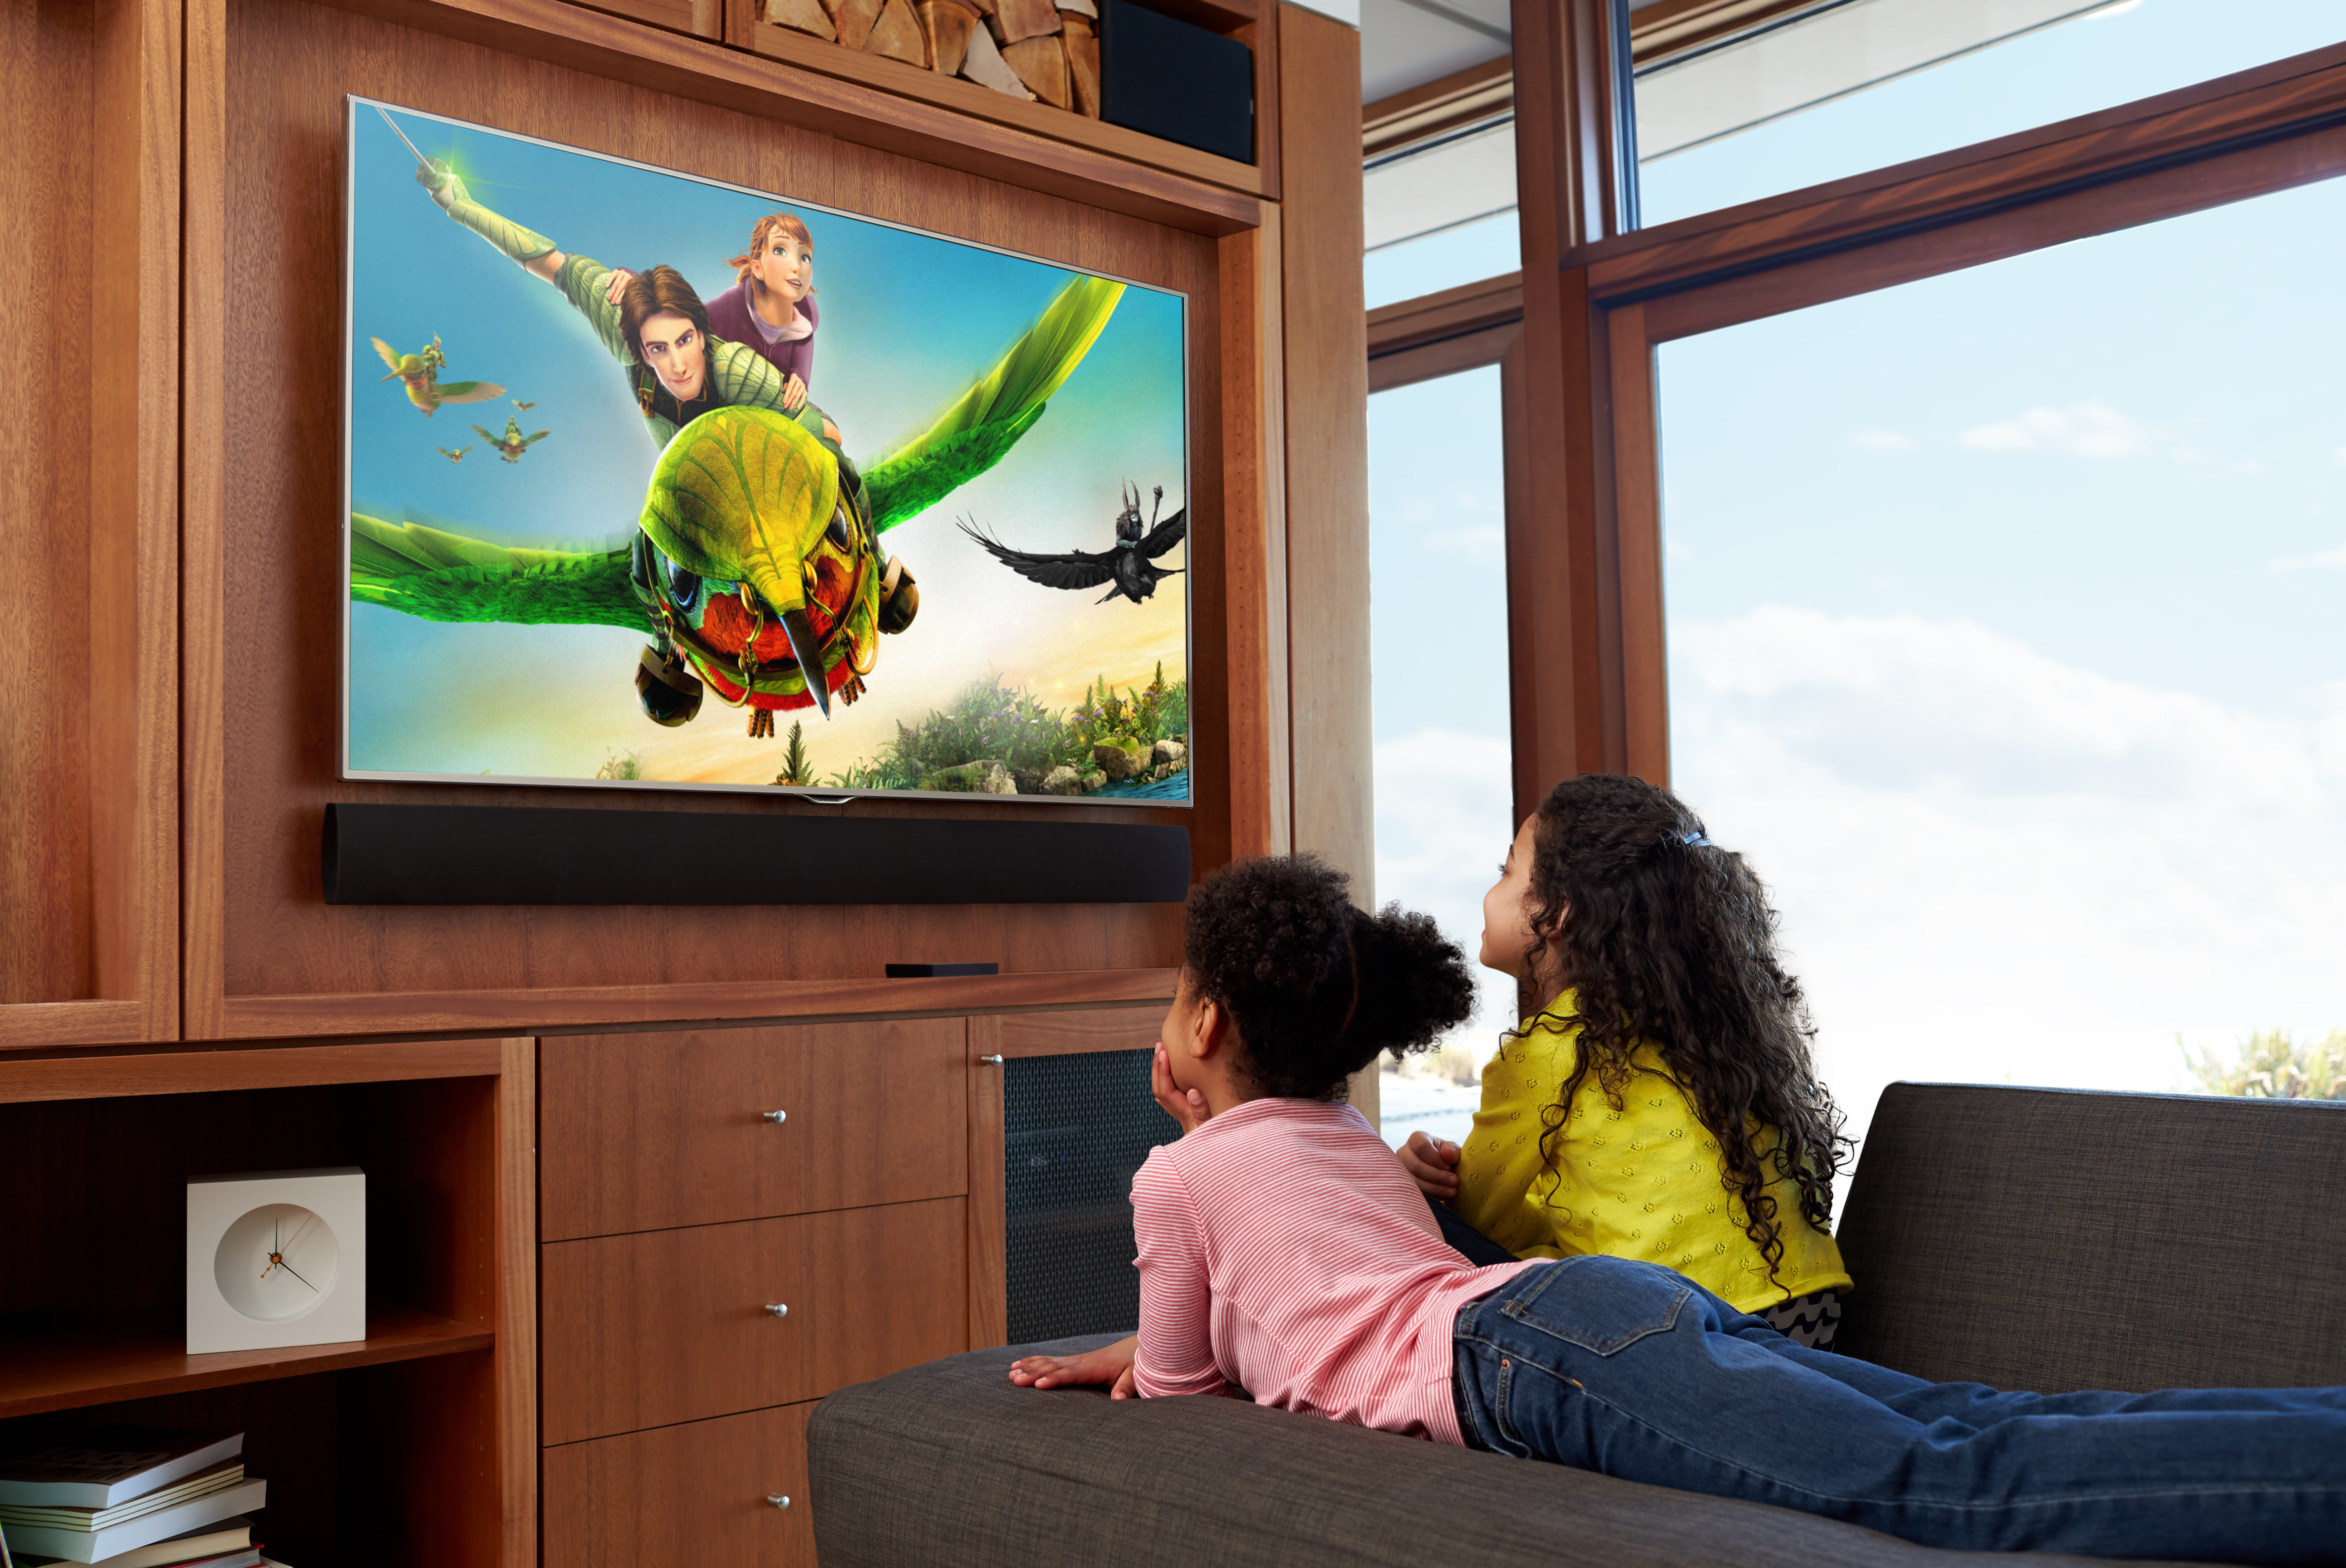 should children watch television Letting children watch hours of tv improves academic ability, study claims  children under 3 'should not watch television' 09 oct 2012 'kids under 5 should not watch tv alone' 01 feb 2013.